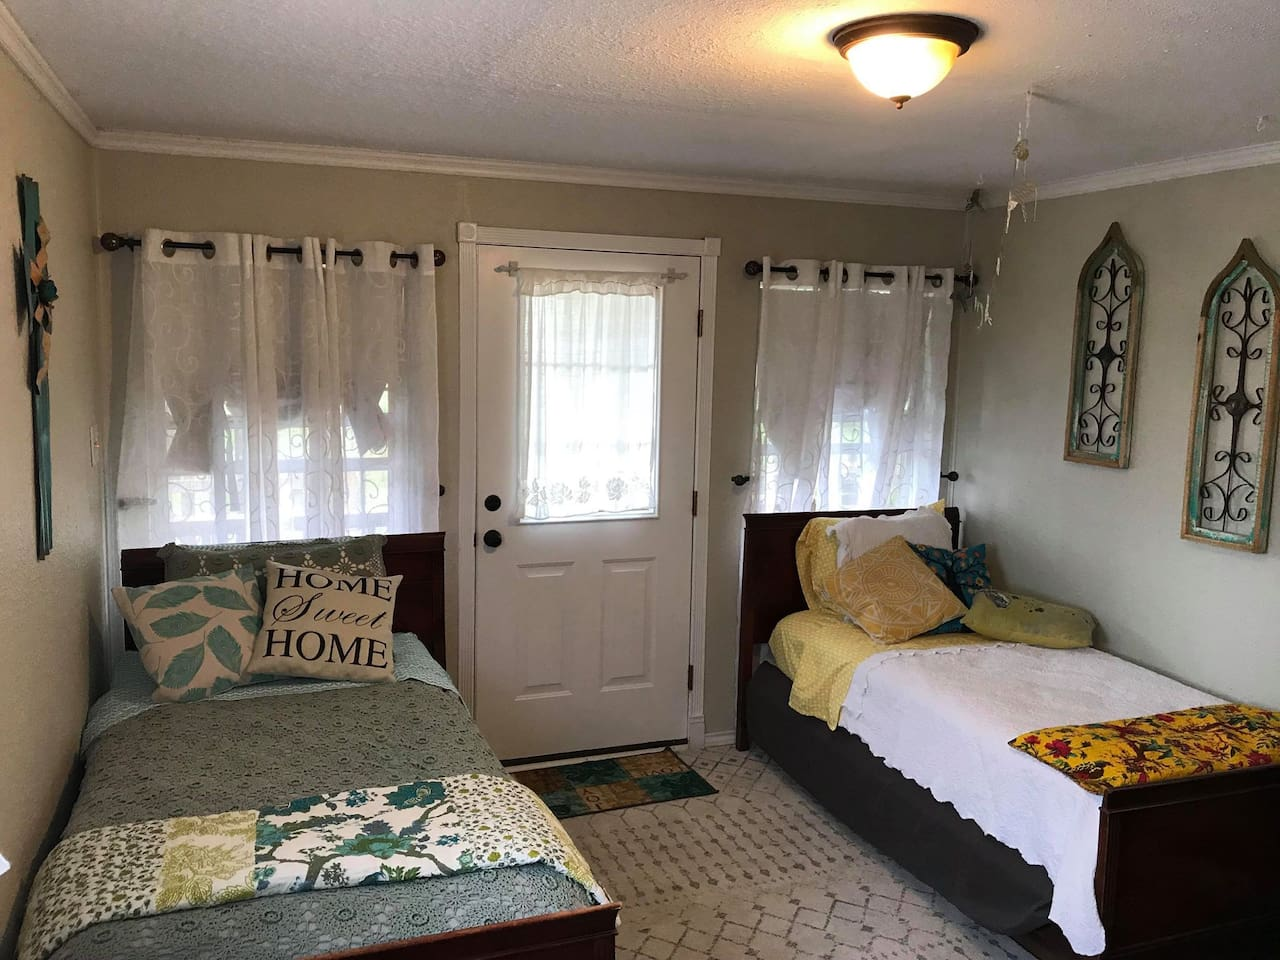 Two twin beds. Beds are family heirlooms, mattresses and linens are new!